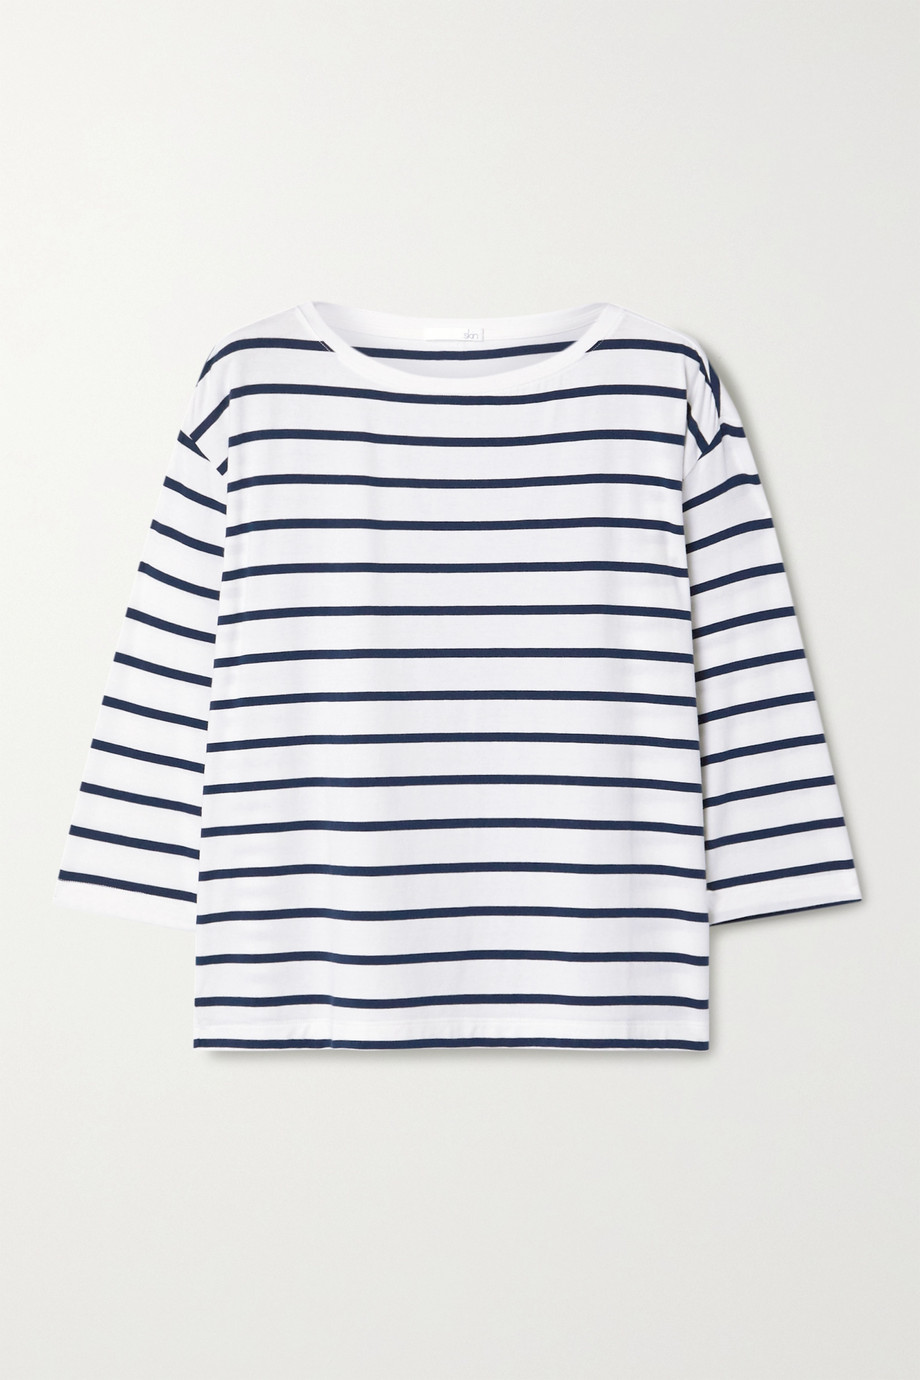 Skin Mathilde striped stretch-jersey top